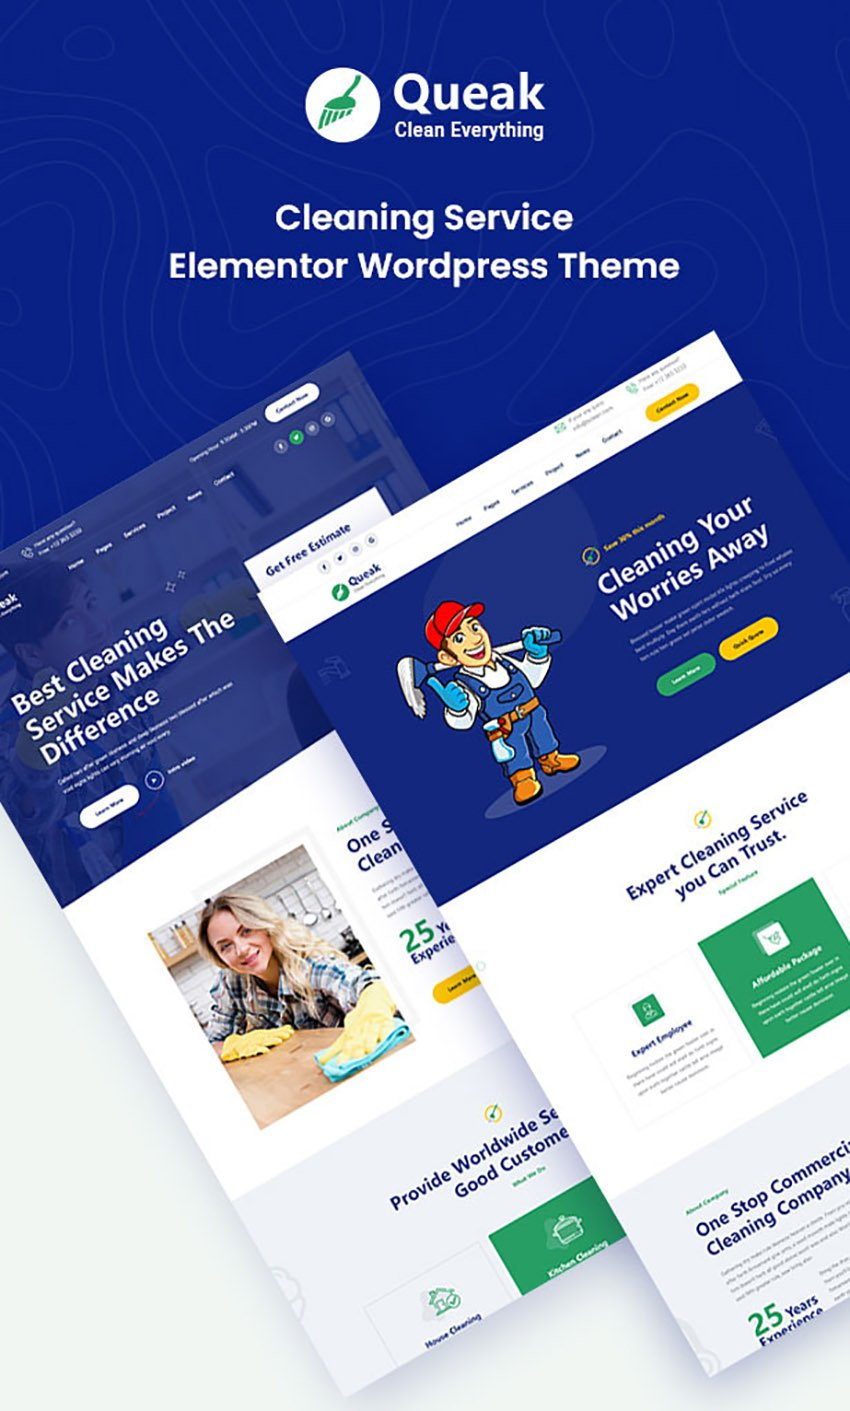 Queak Cleaning Service Template